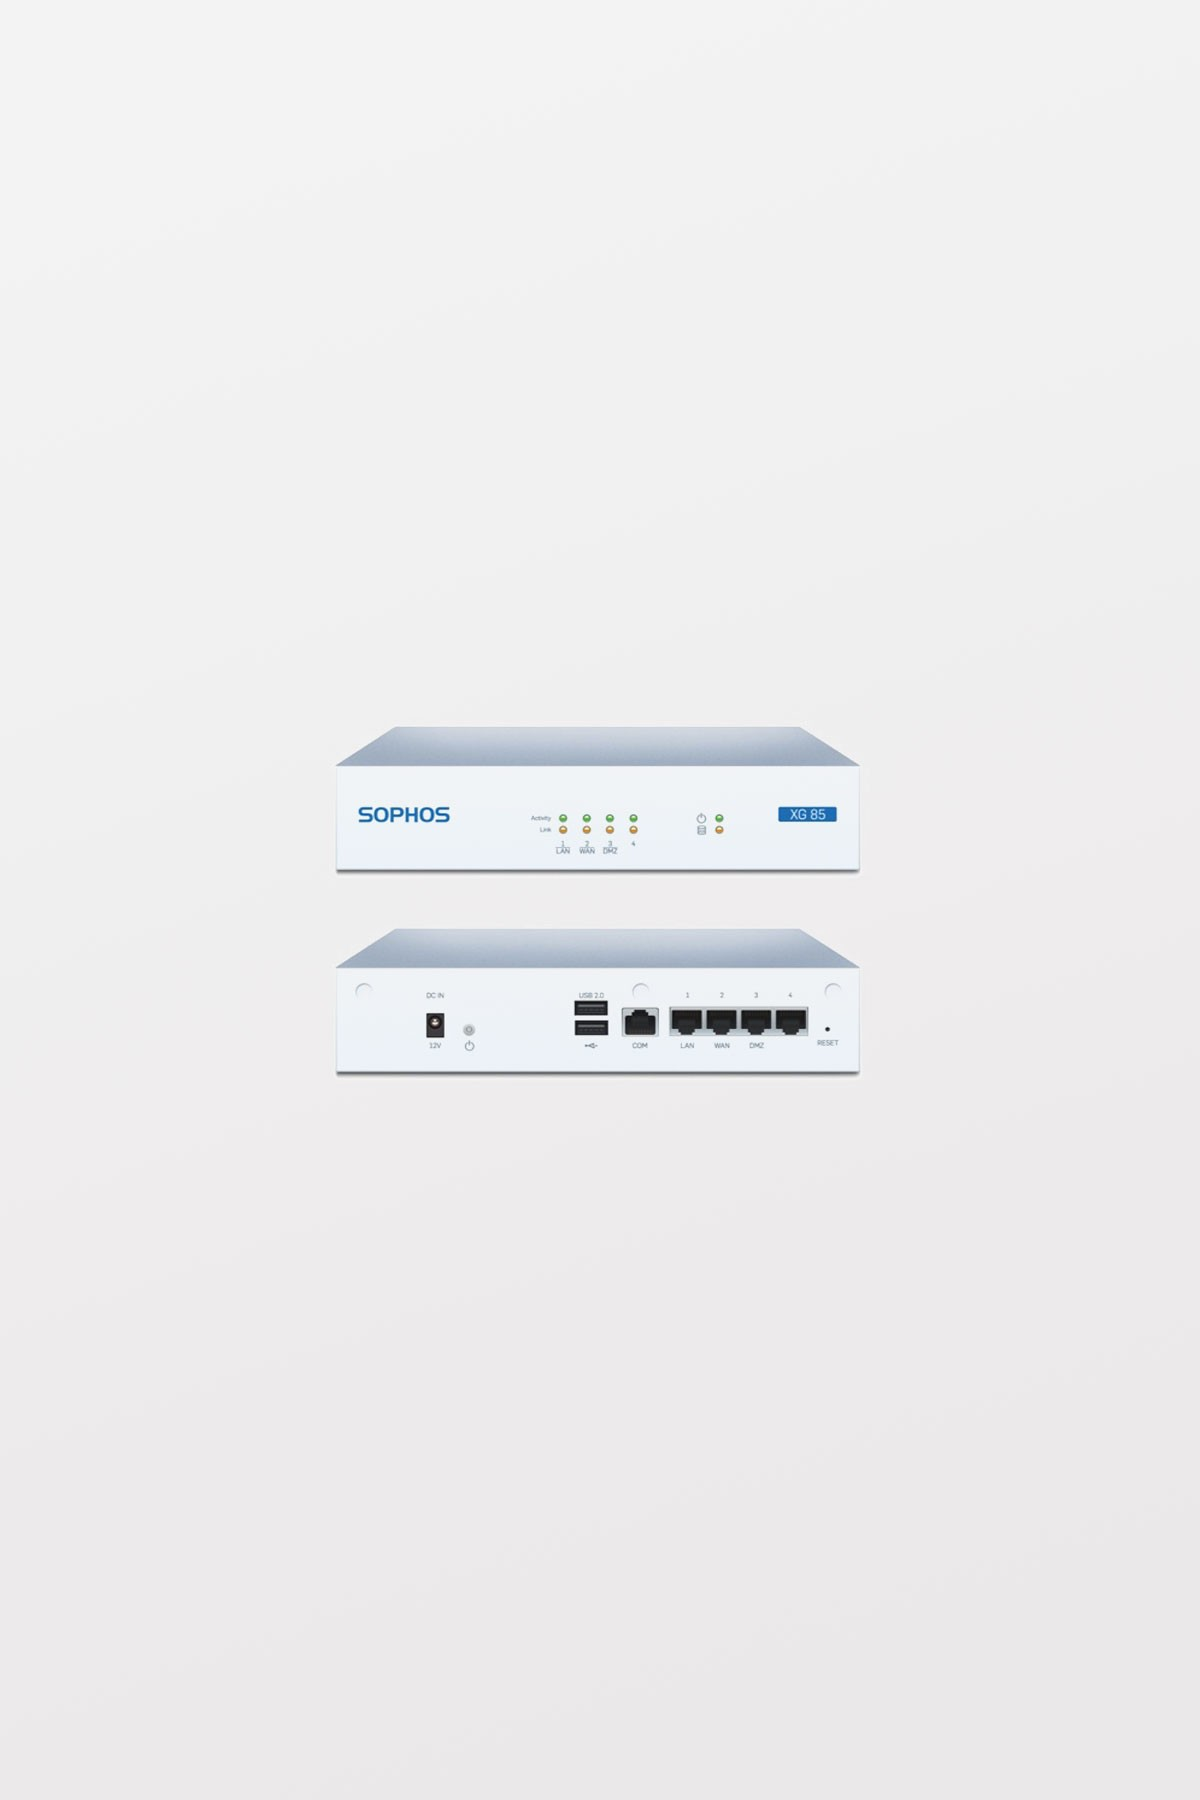 Sophos XG85 Firewall Appliance with TotalProtect License - 3-year (AU power cord)